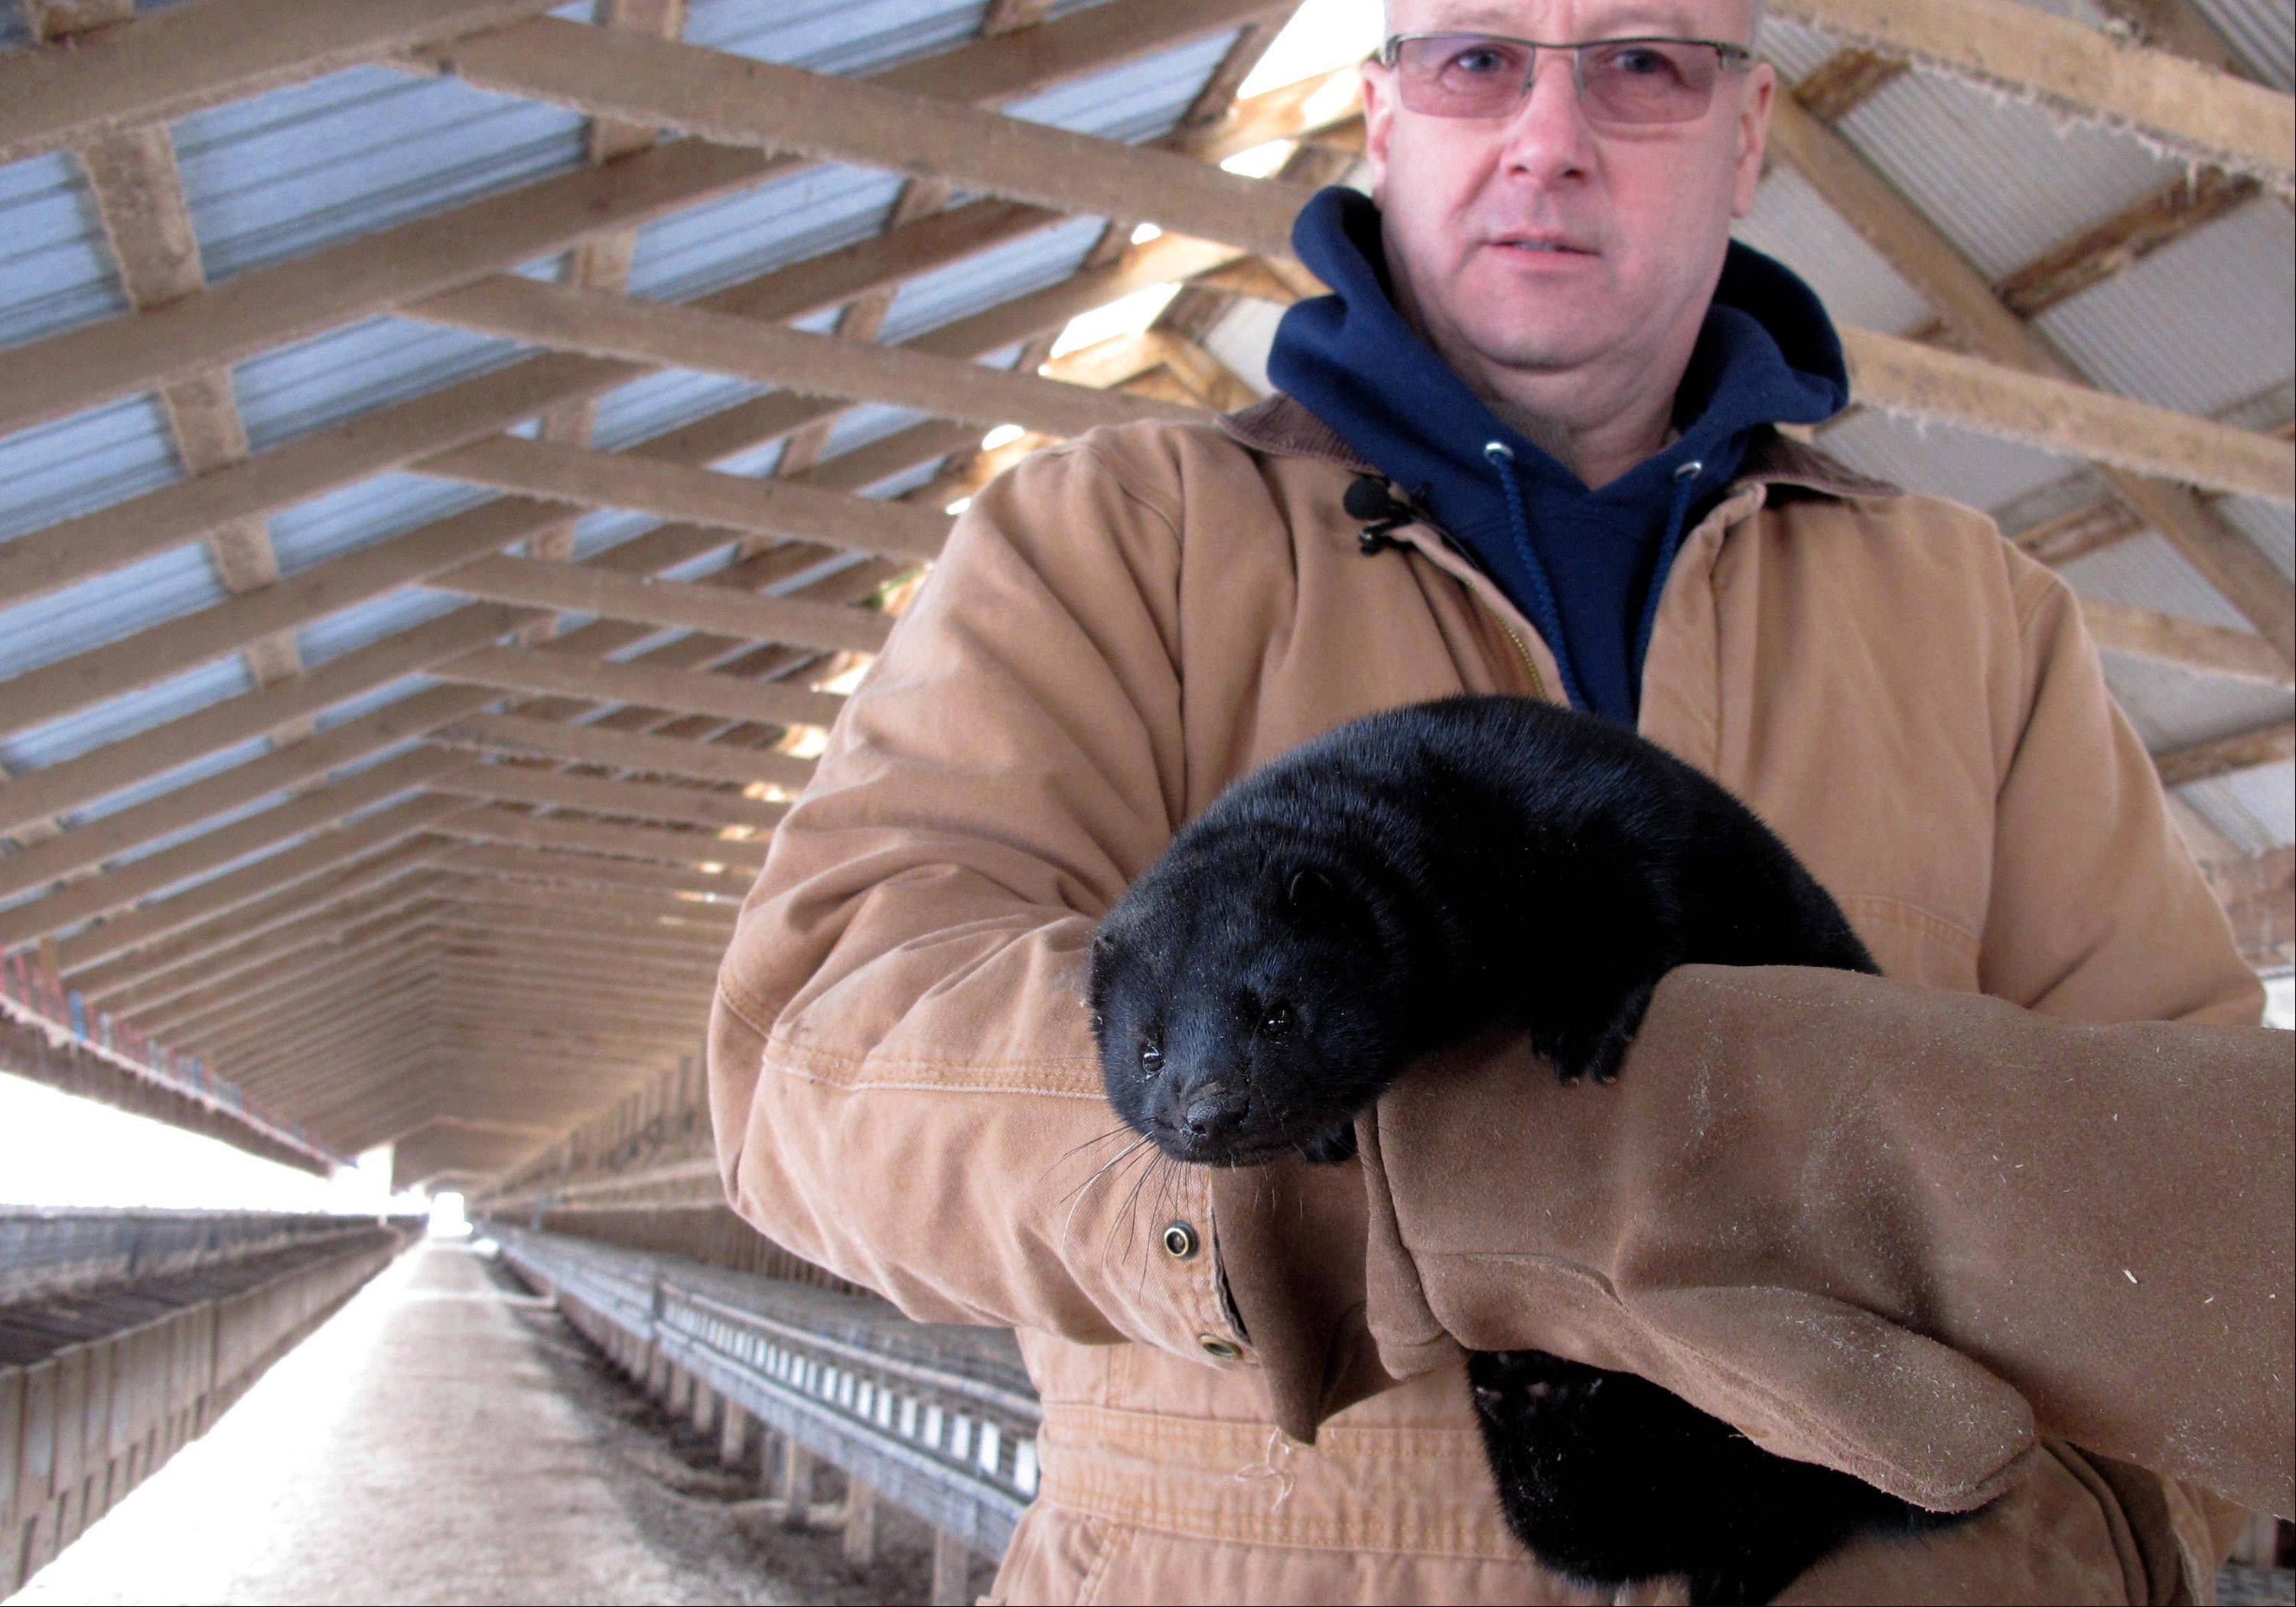 Bob Zimbal holds one of his minks near rows of cages at his fur farm in Sheboygan Falls, Wis.